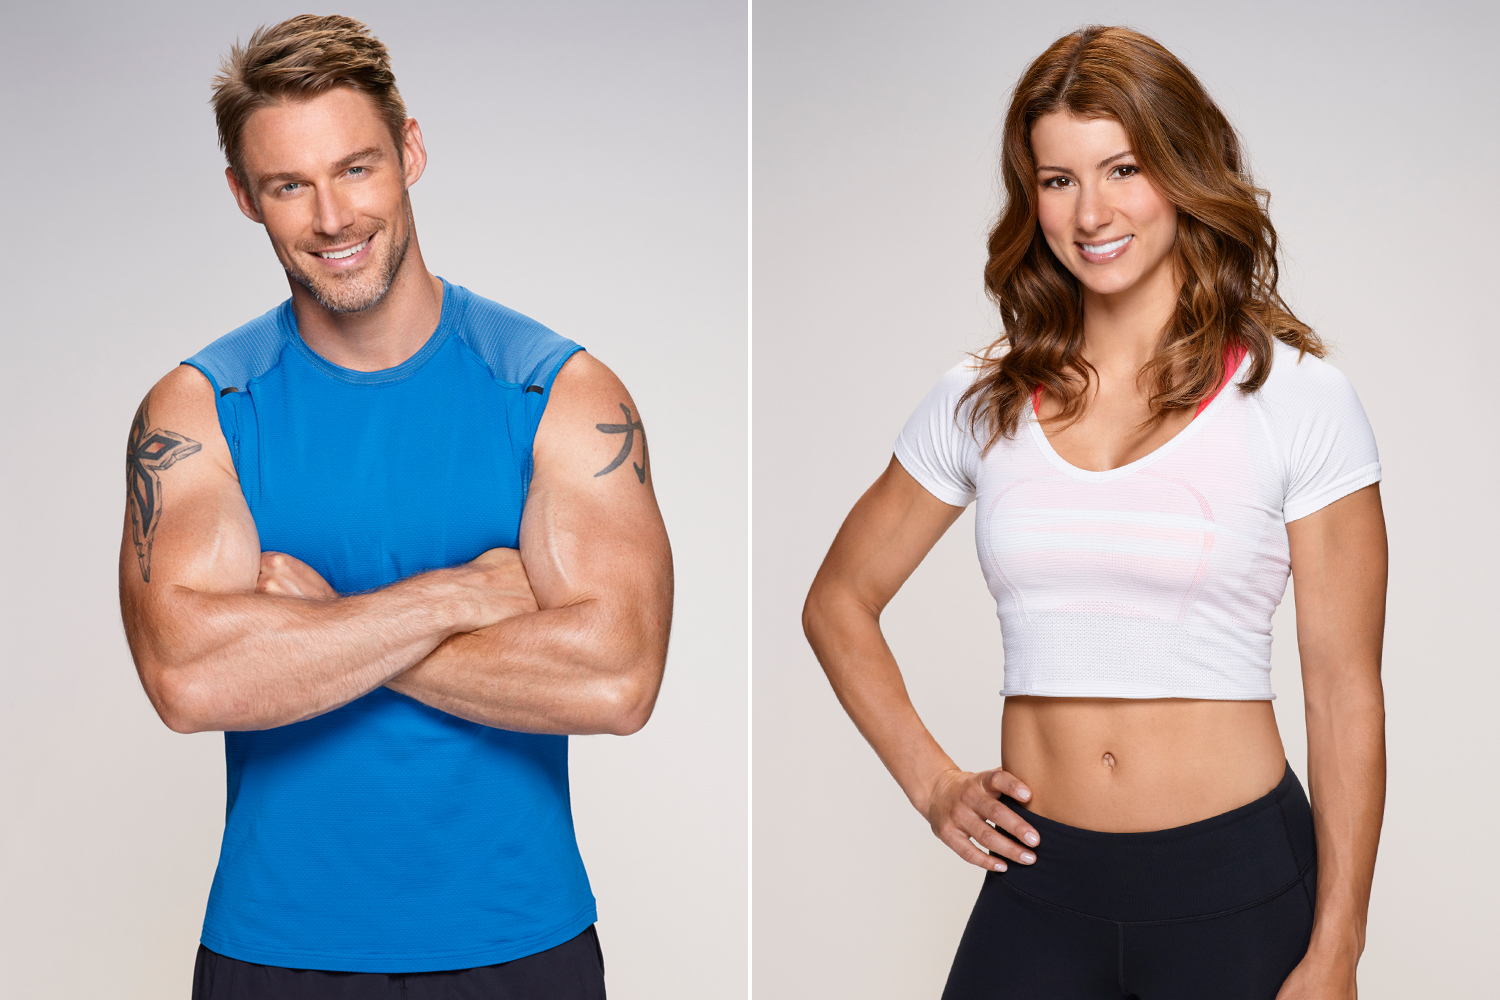 Meet the new coaches for season 16 of The Biggest Loser